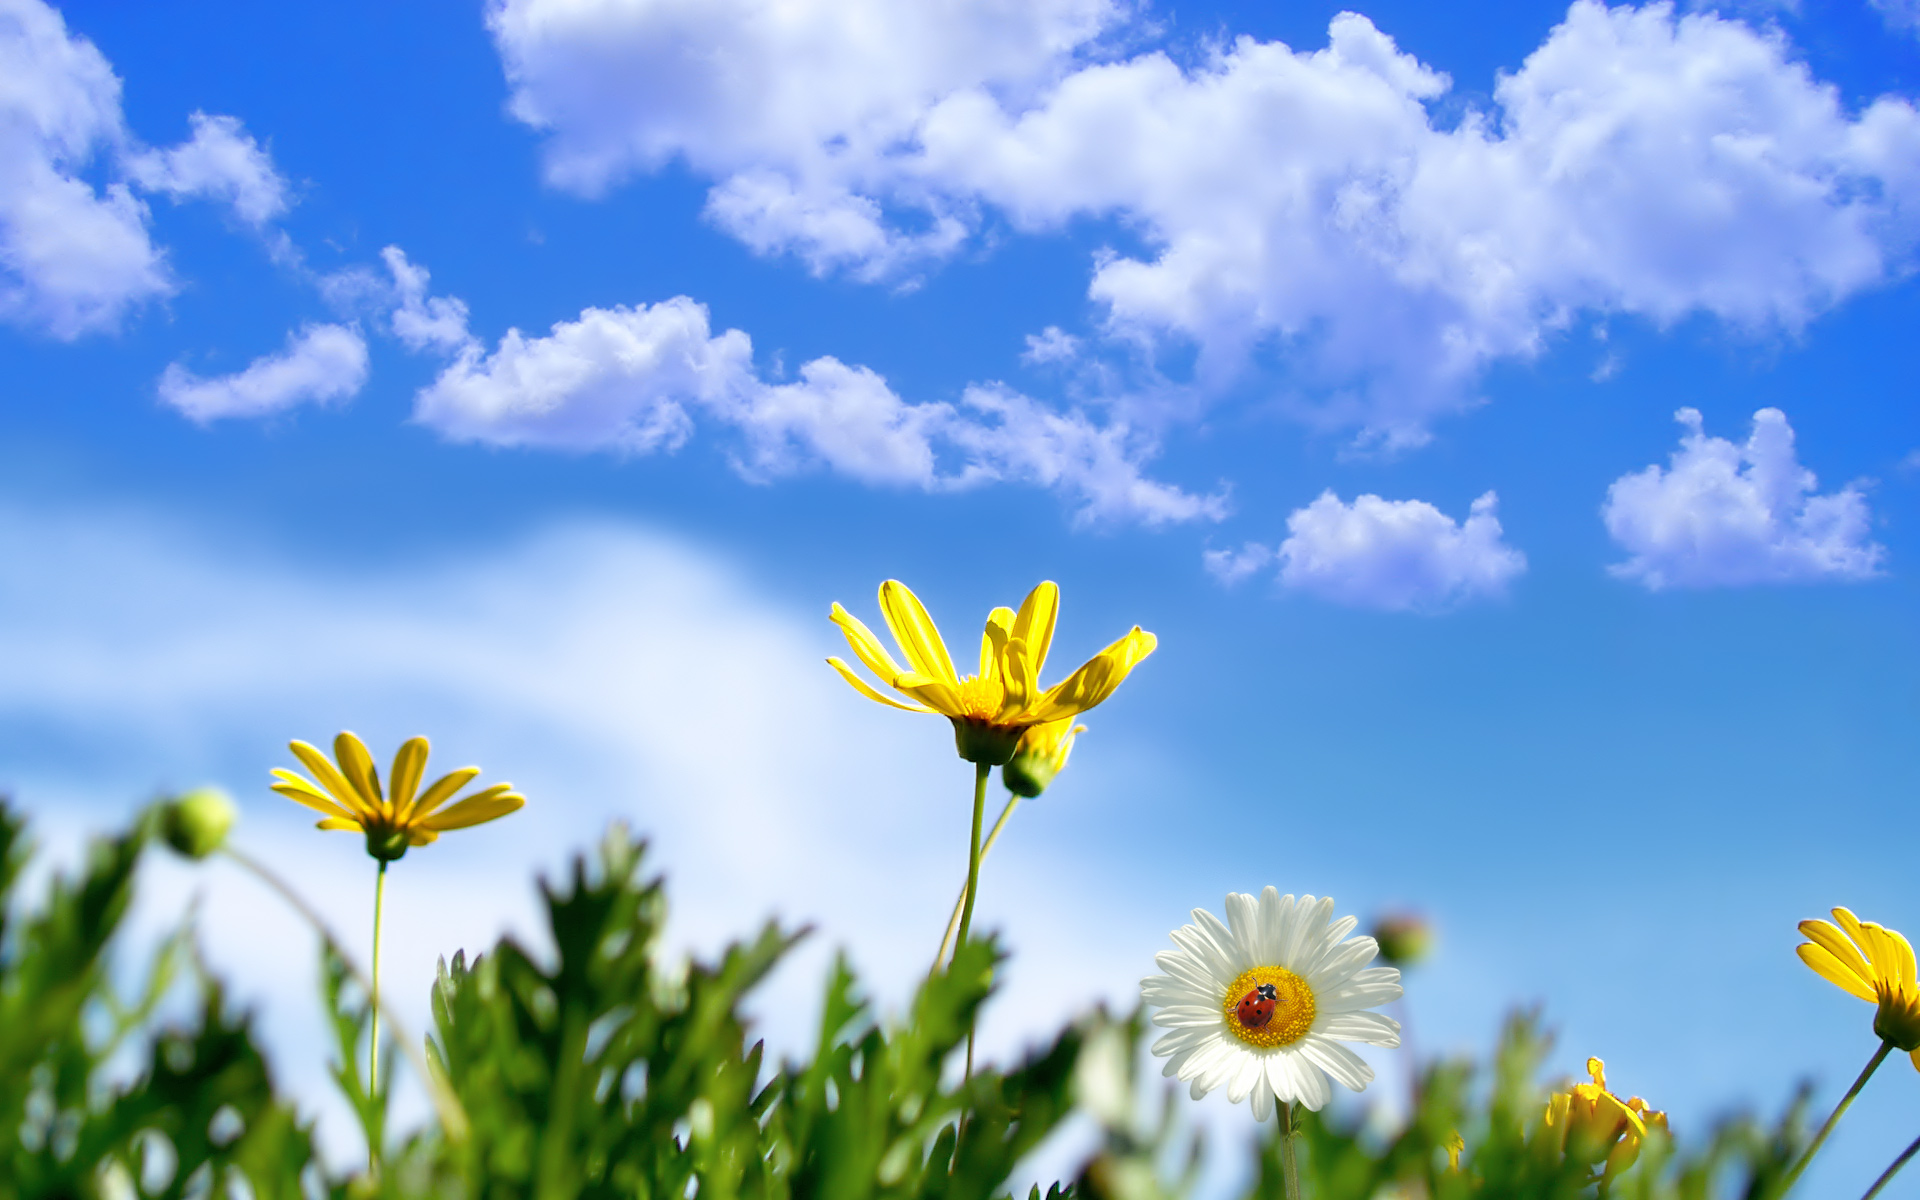 Free Scenery Wallpaper Shows Sunny Springtime Keep Spring All